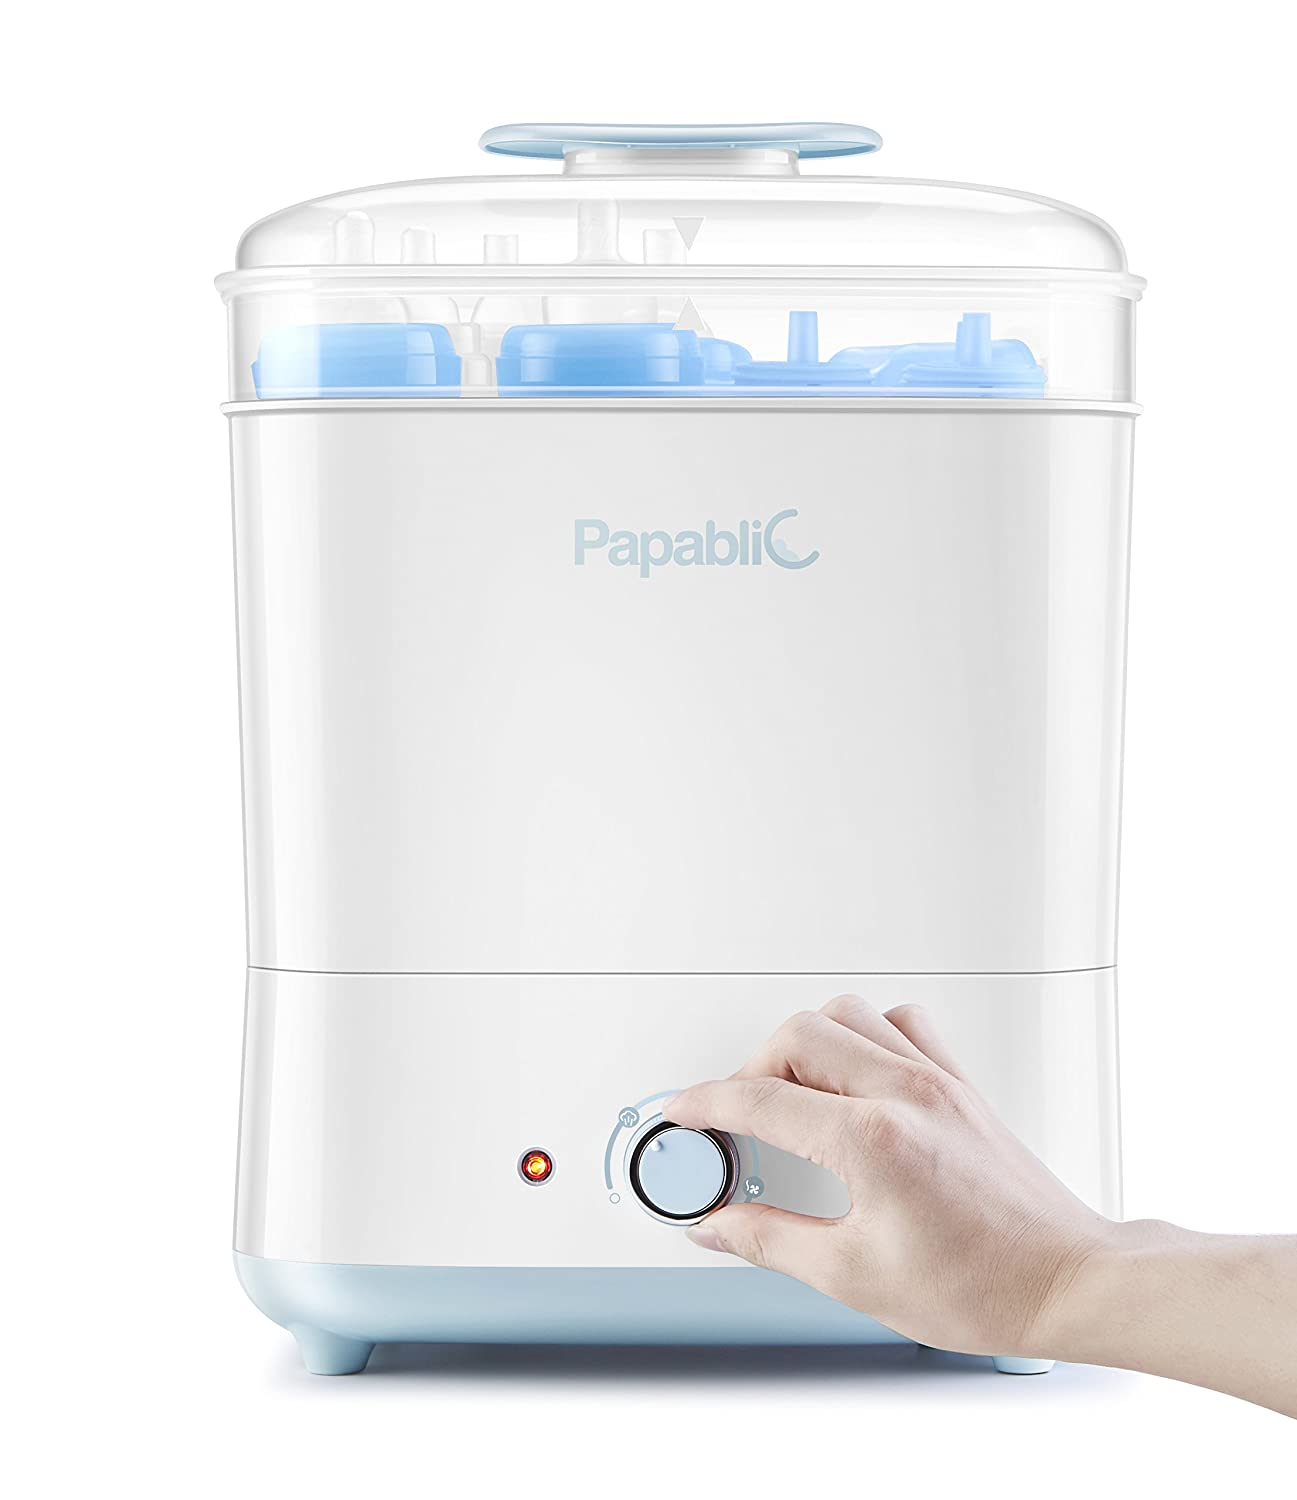 Papablic Baby Bottle Electric Steam Sterilizer and Dryer Papablic01